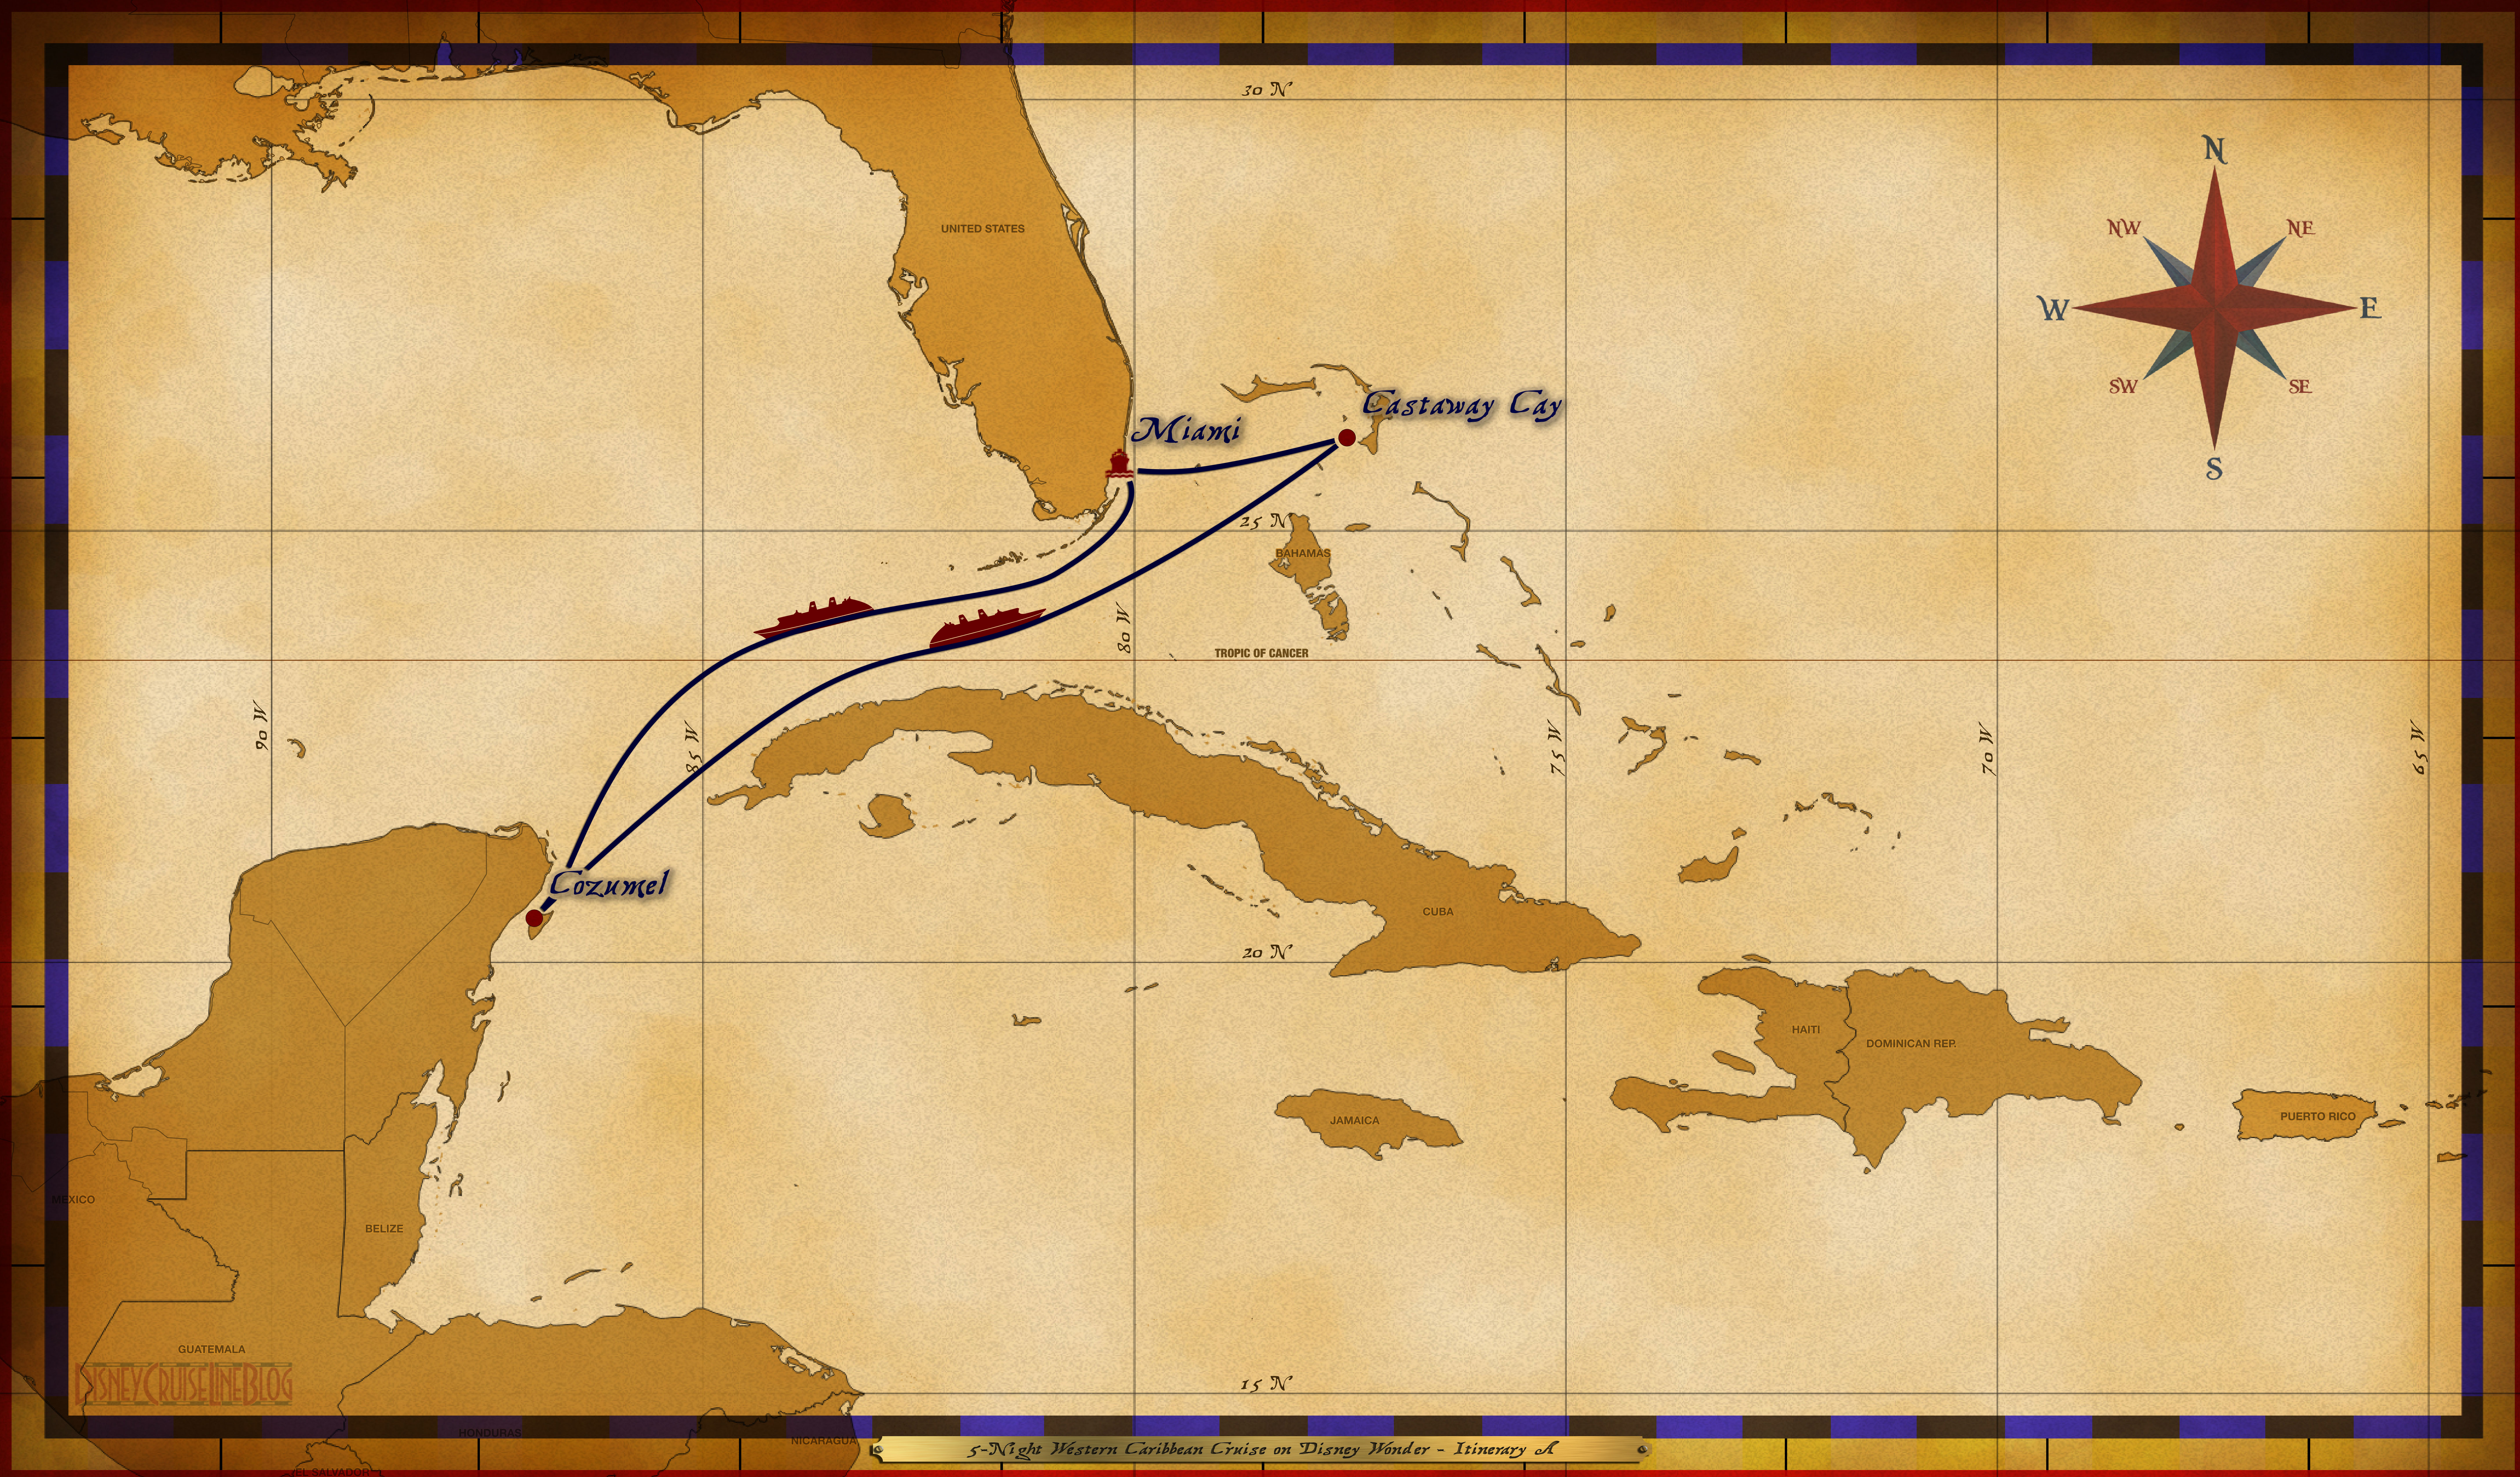 Disney Cruise Line Announces Itineraries For Winter 2016